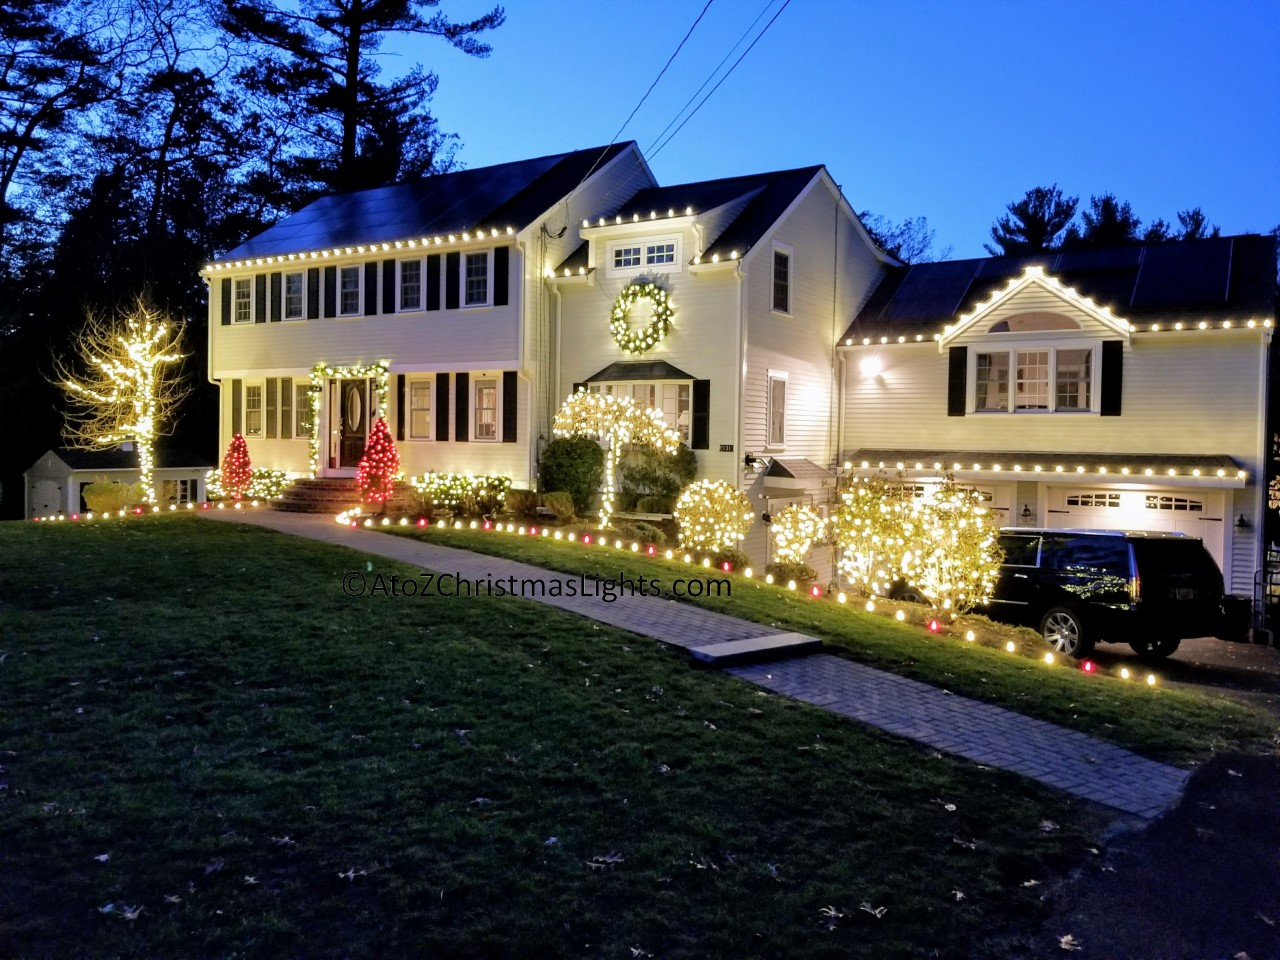 Holiday Lighting in the South Shore MA Area